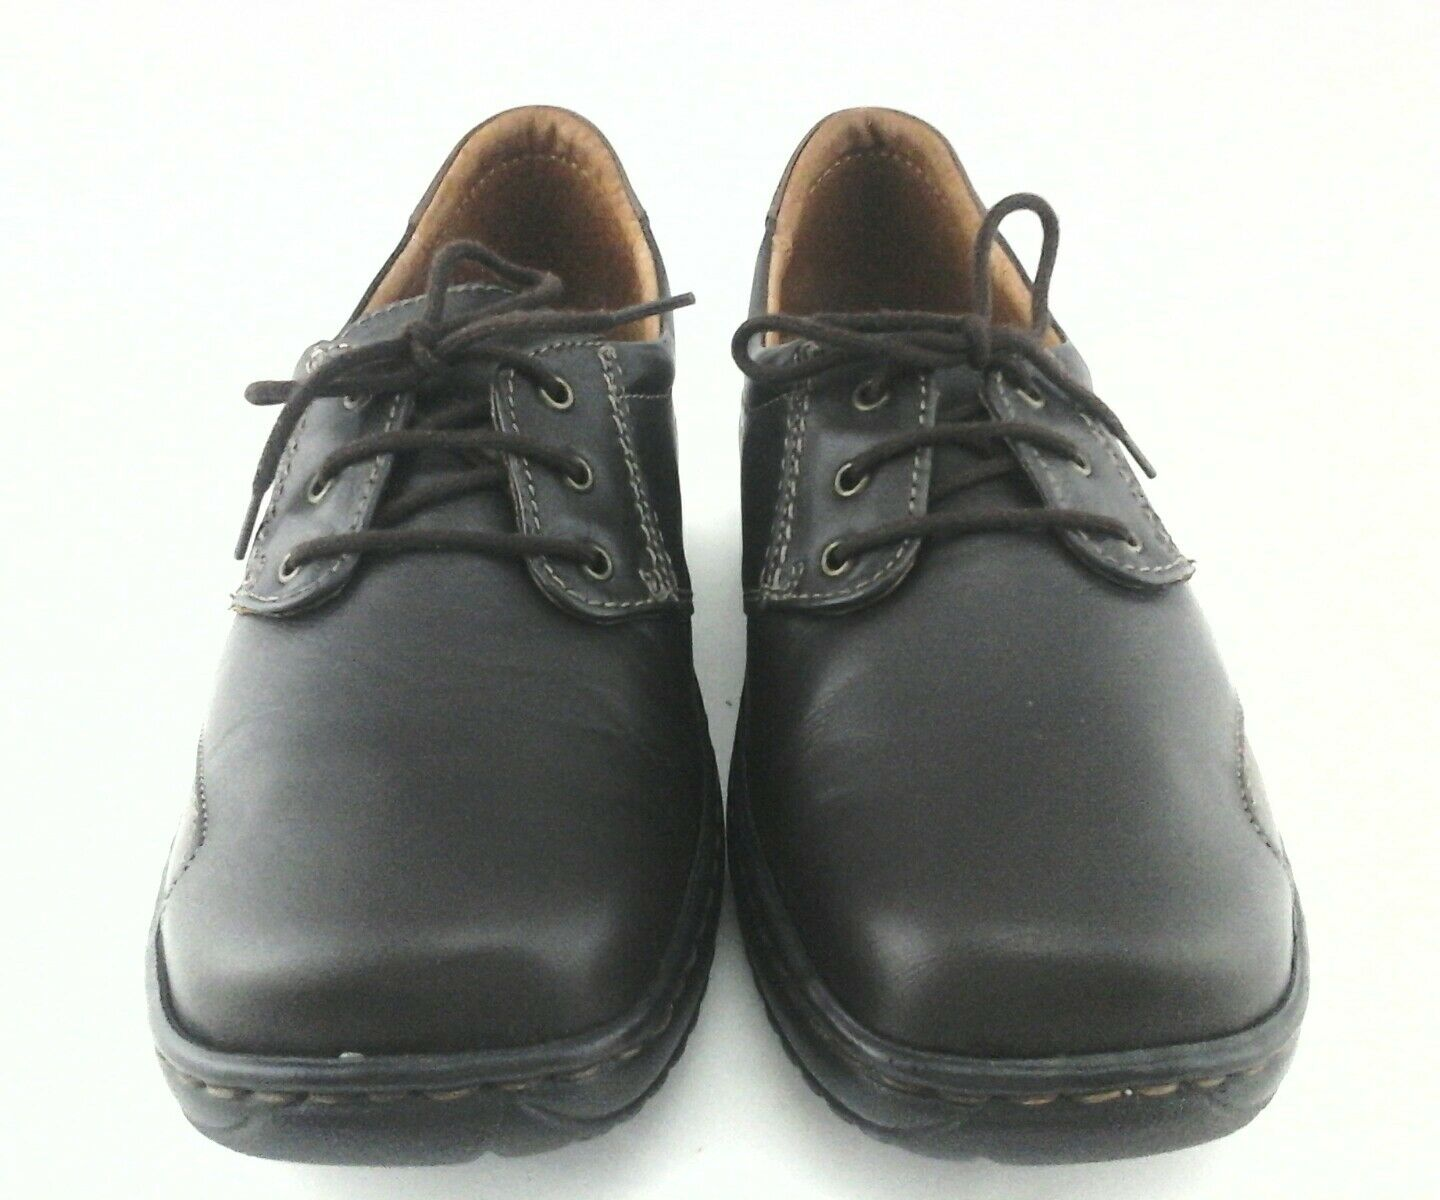 JOSEF SEIBEL shoes Brown Leather Leather Leather OXFORDS Lace Up Women's US 6 6.5 EU 37  150 951abf